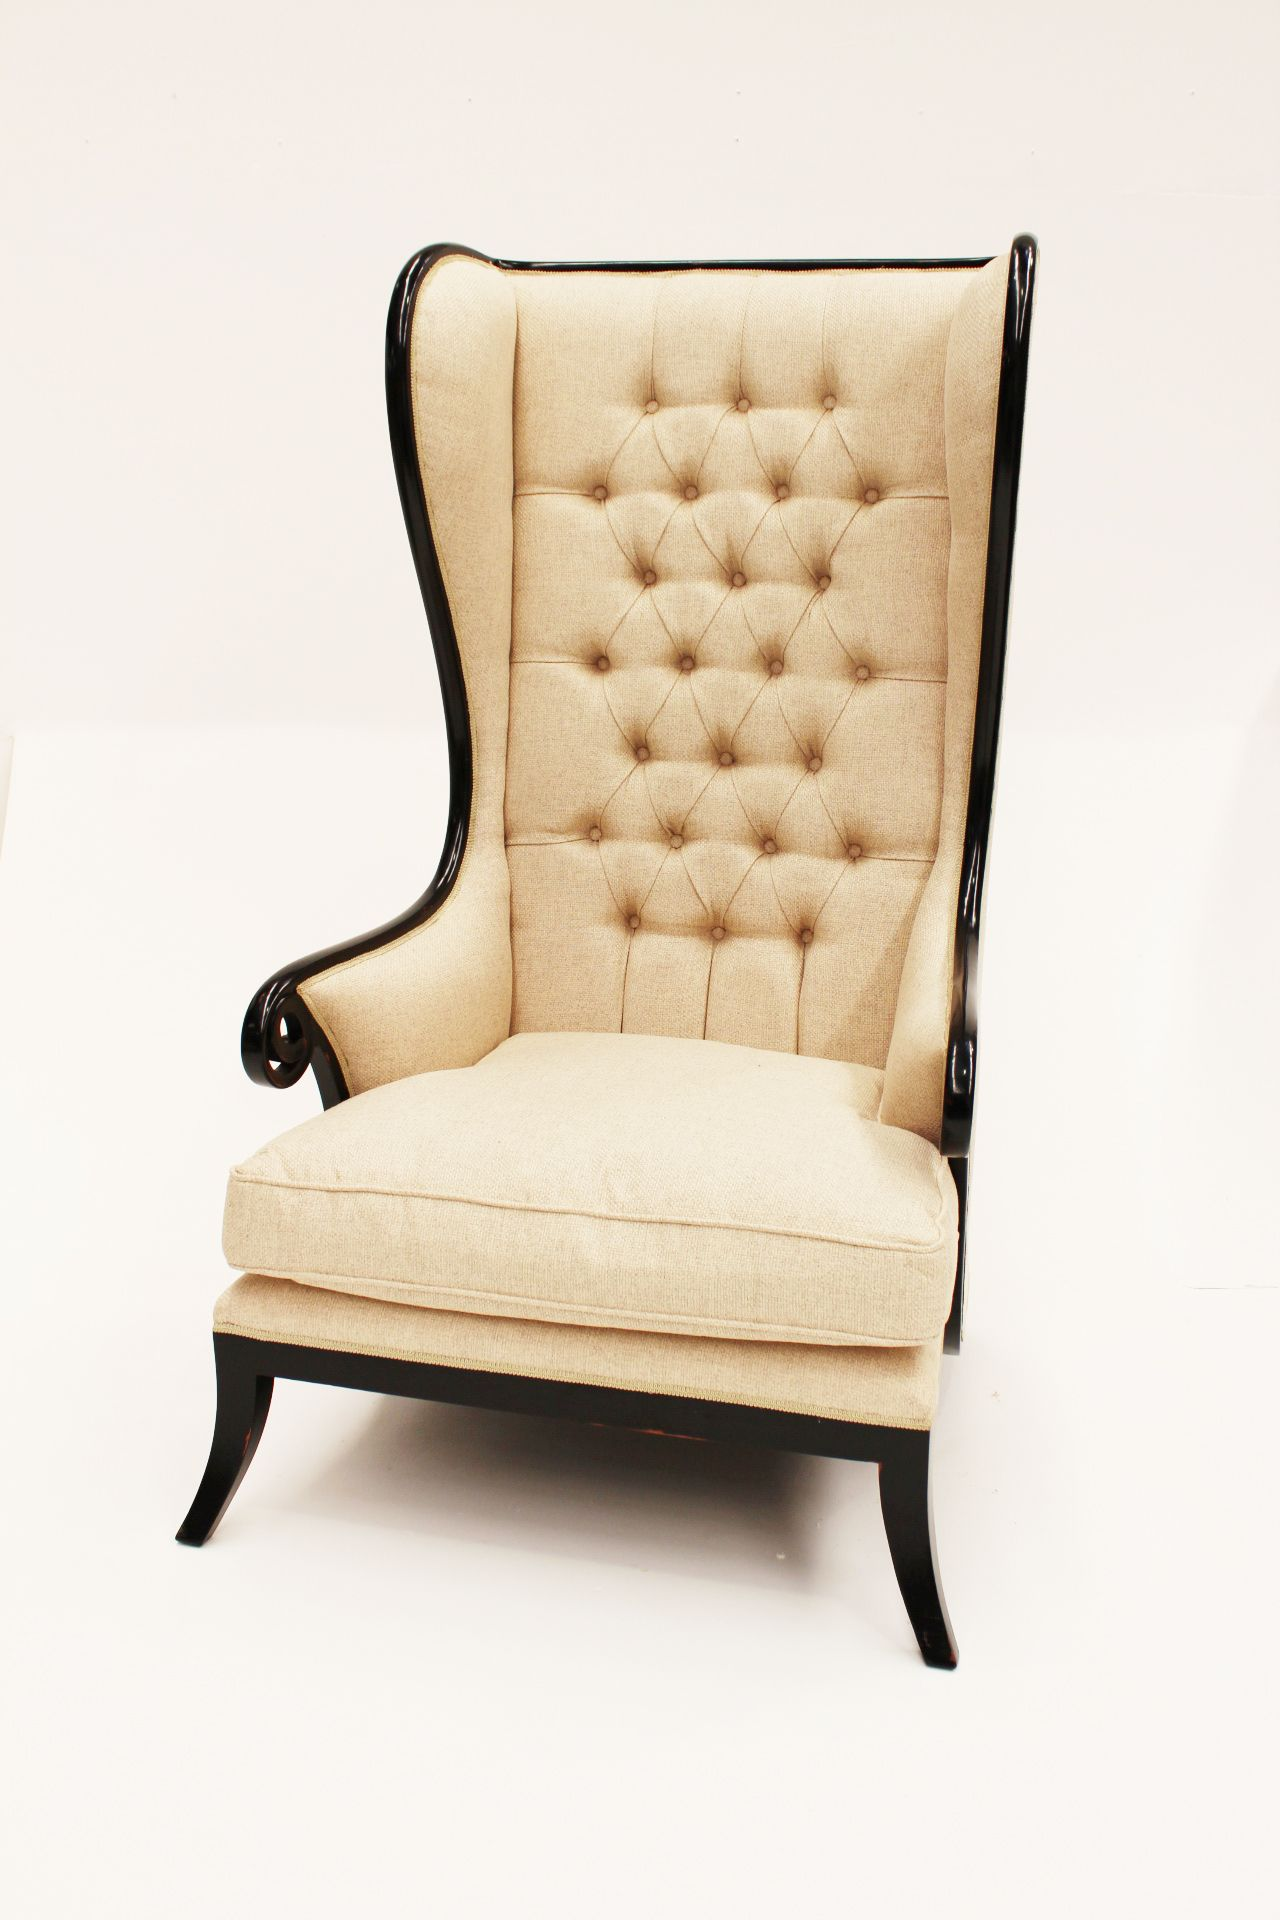 Remarkable Tall Wingback Chair Hudson Furniture Chair Hudson Ocoug Best Dining Table And Chair Ideas Images Ocougorg